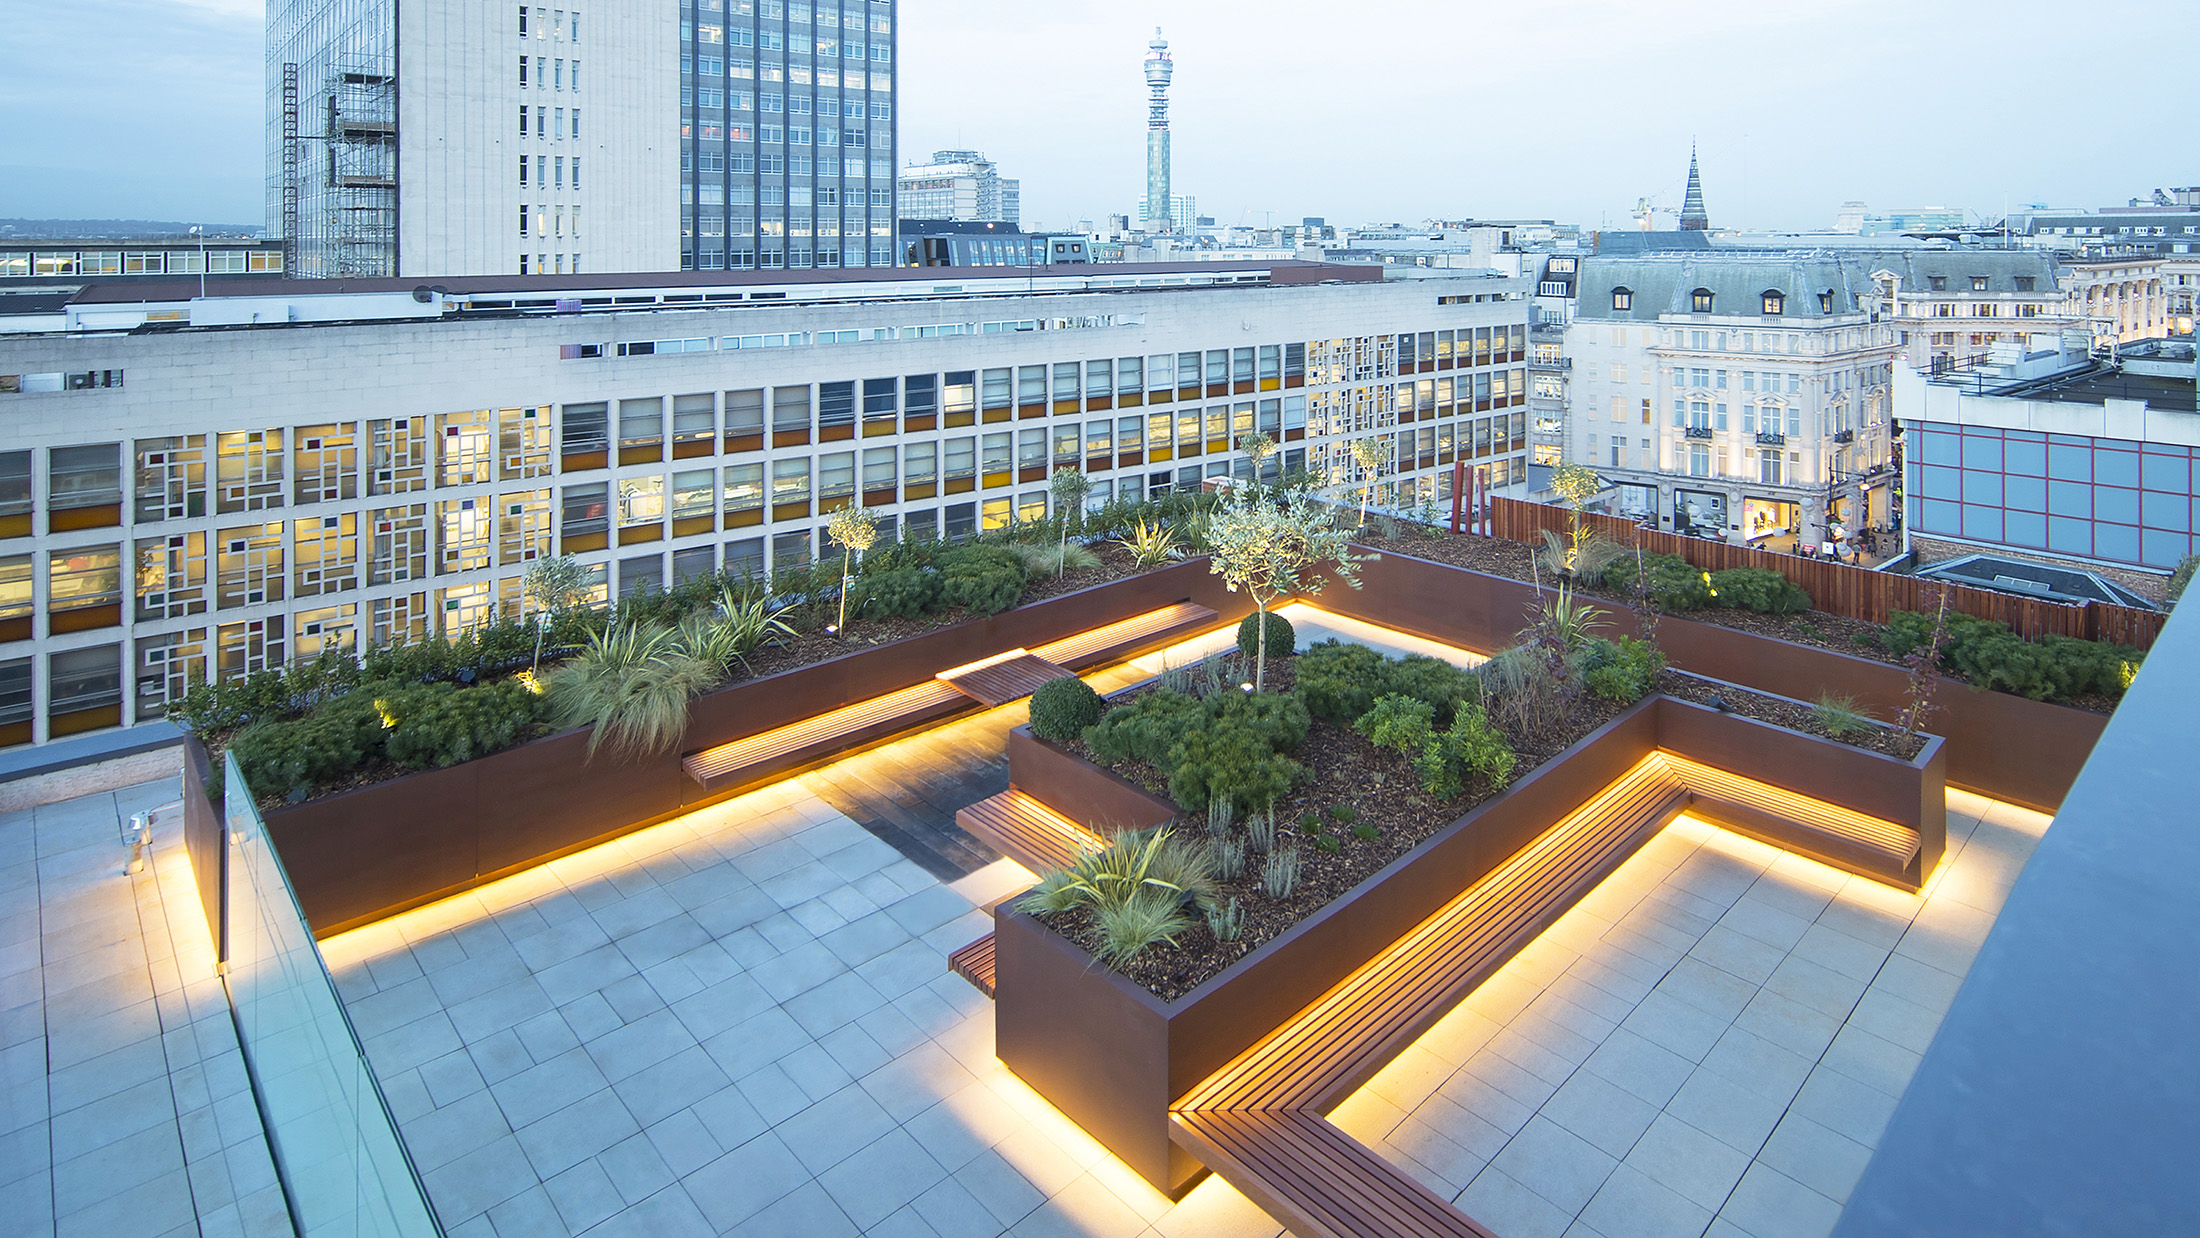 Hanover Square Planters by Europlanters